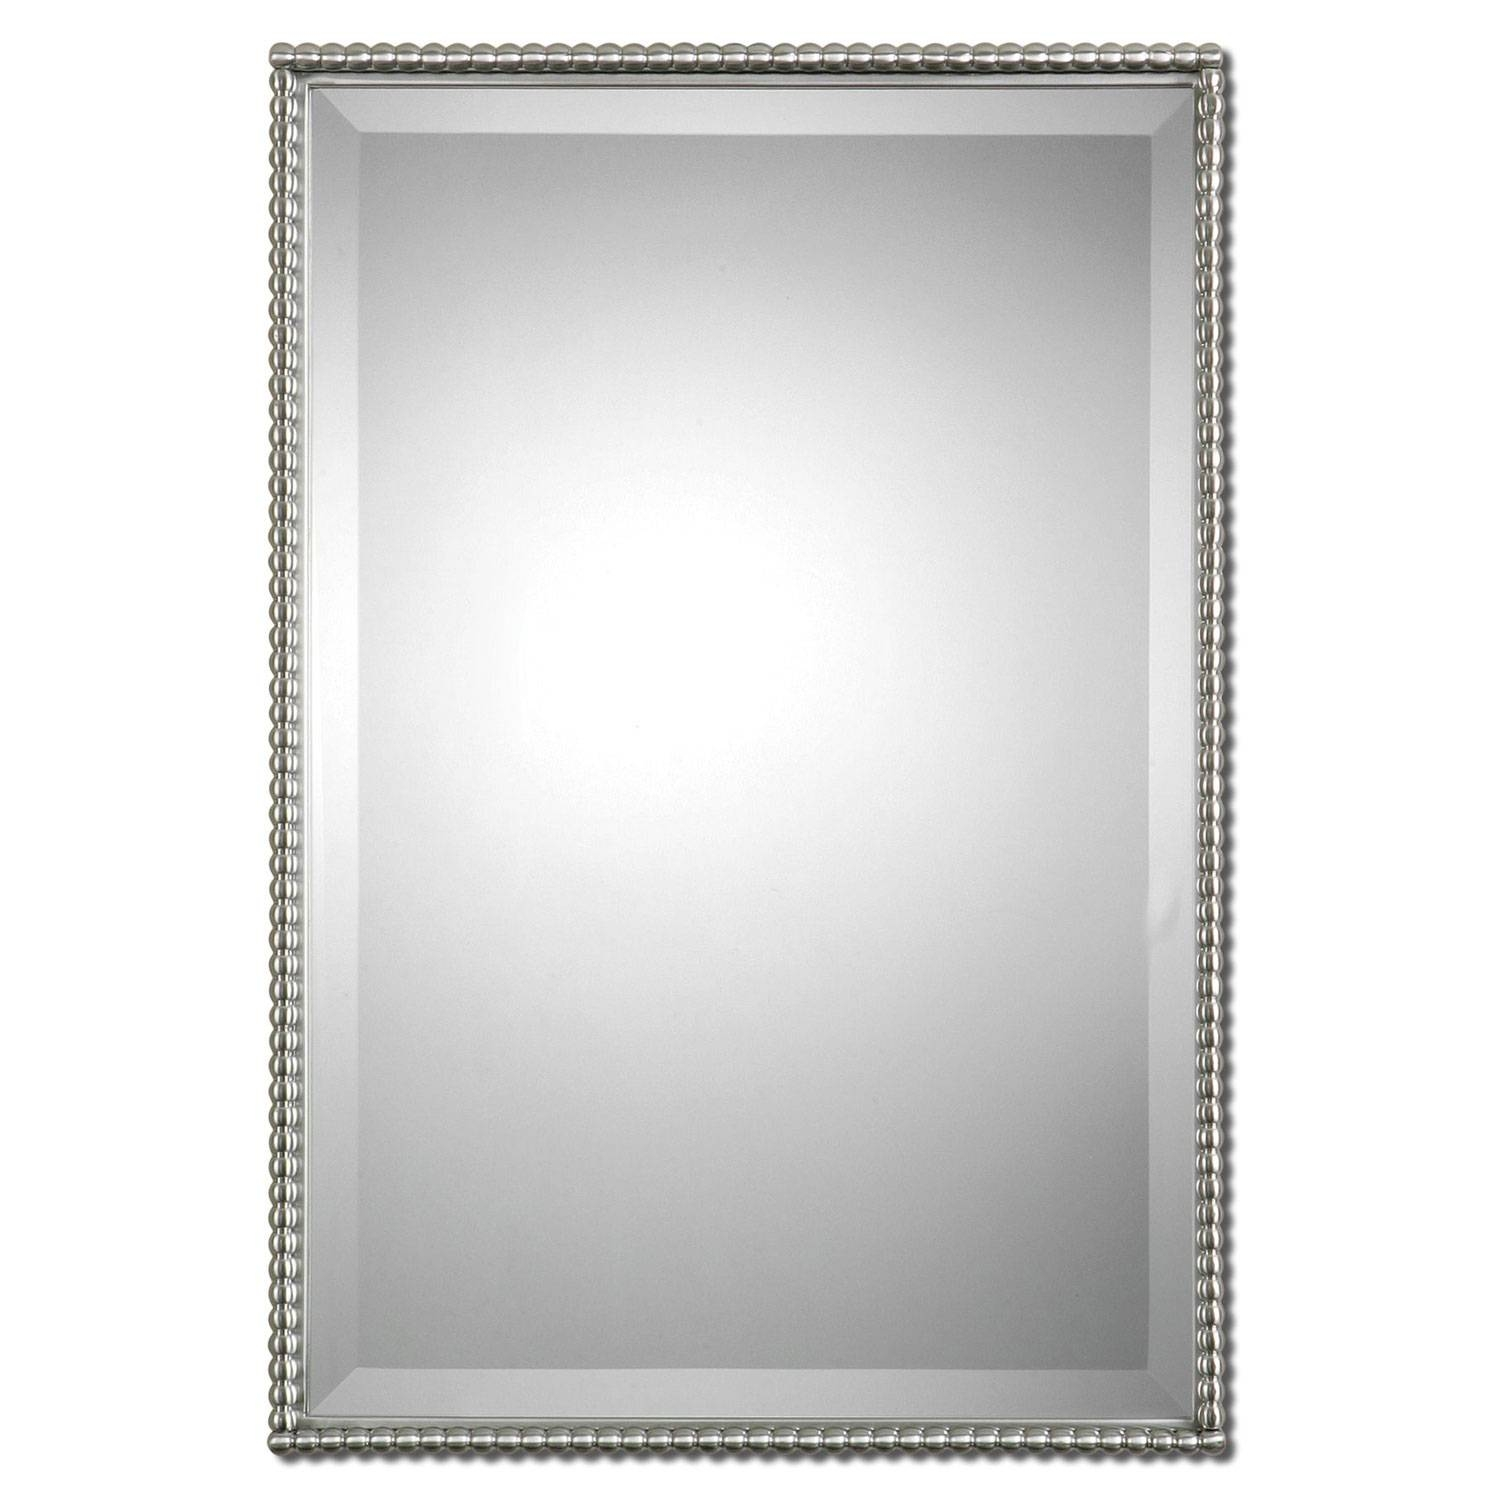 Modern Bathroom Mirrors | Contemporary Mirrors For The Bathroom within Modern Bevelled Mirrors (Image 12 of 15)